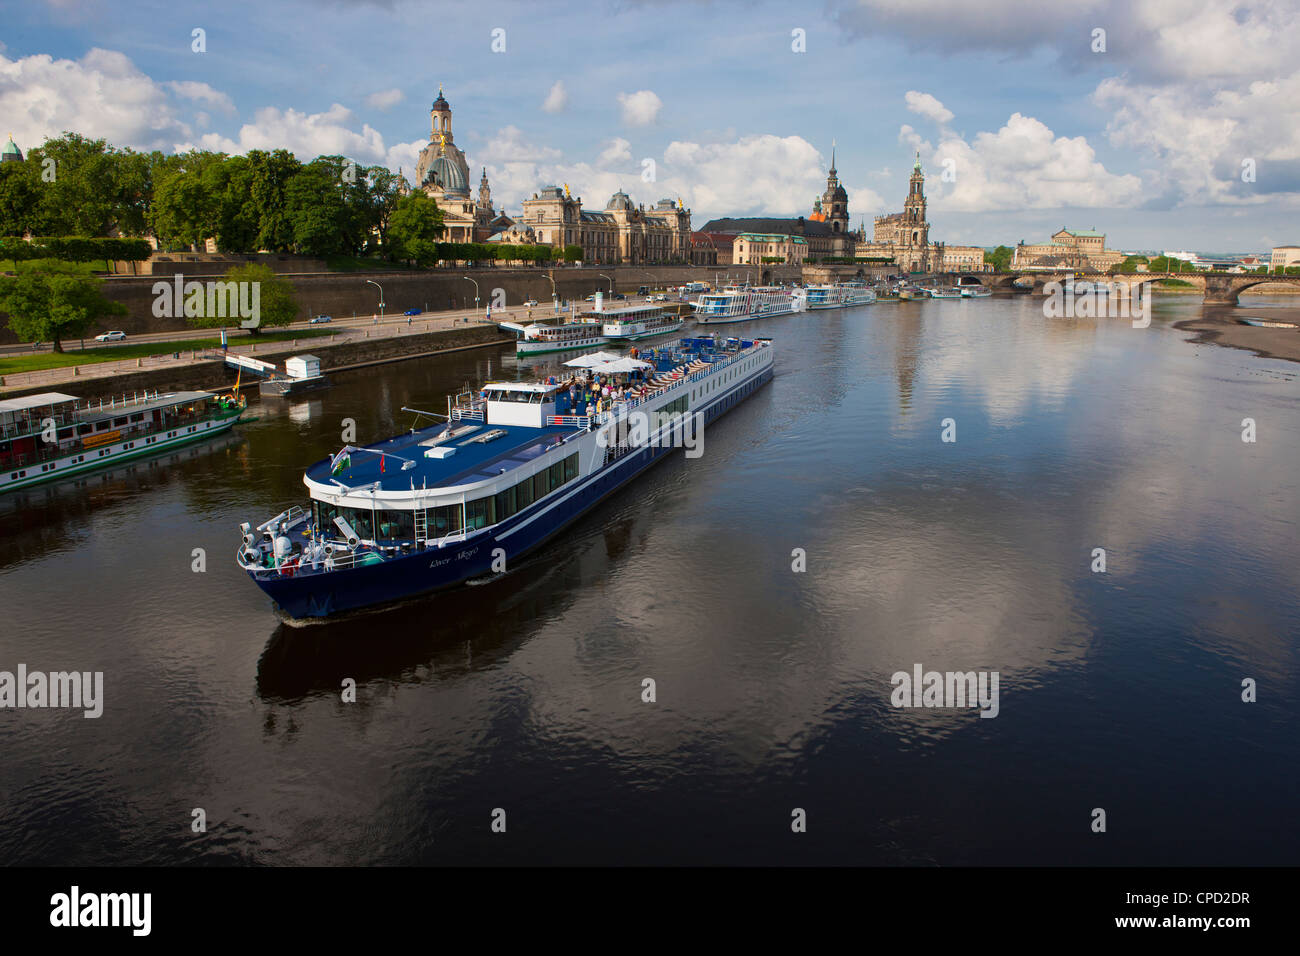 Cruise ships on the River Elbe, Dresden, Saxony, Germany, Europe - Stock Image